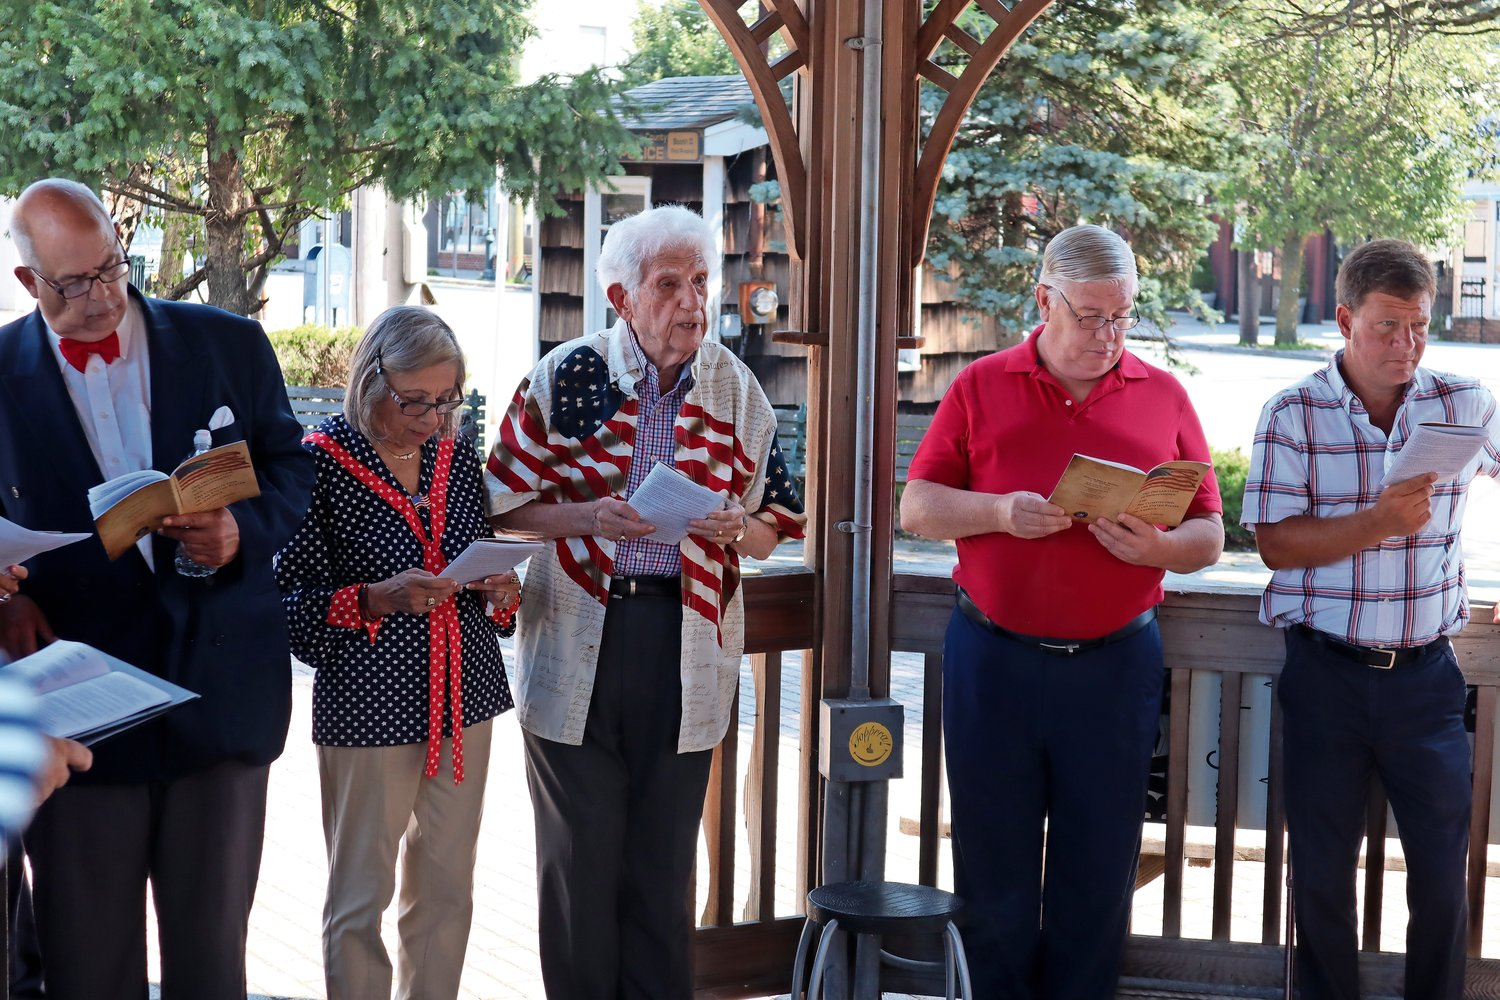 Traditionally, members of the community gather at the Merrick gazebo for a group reading of the Declaration of Independence on July 4.